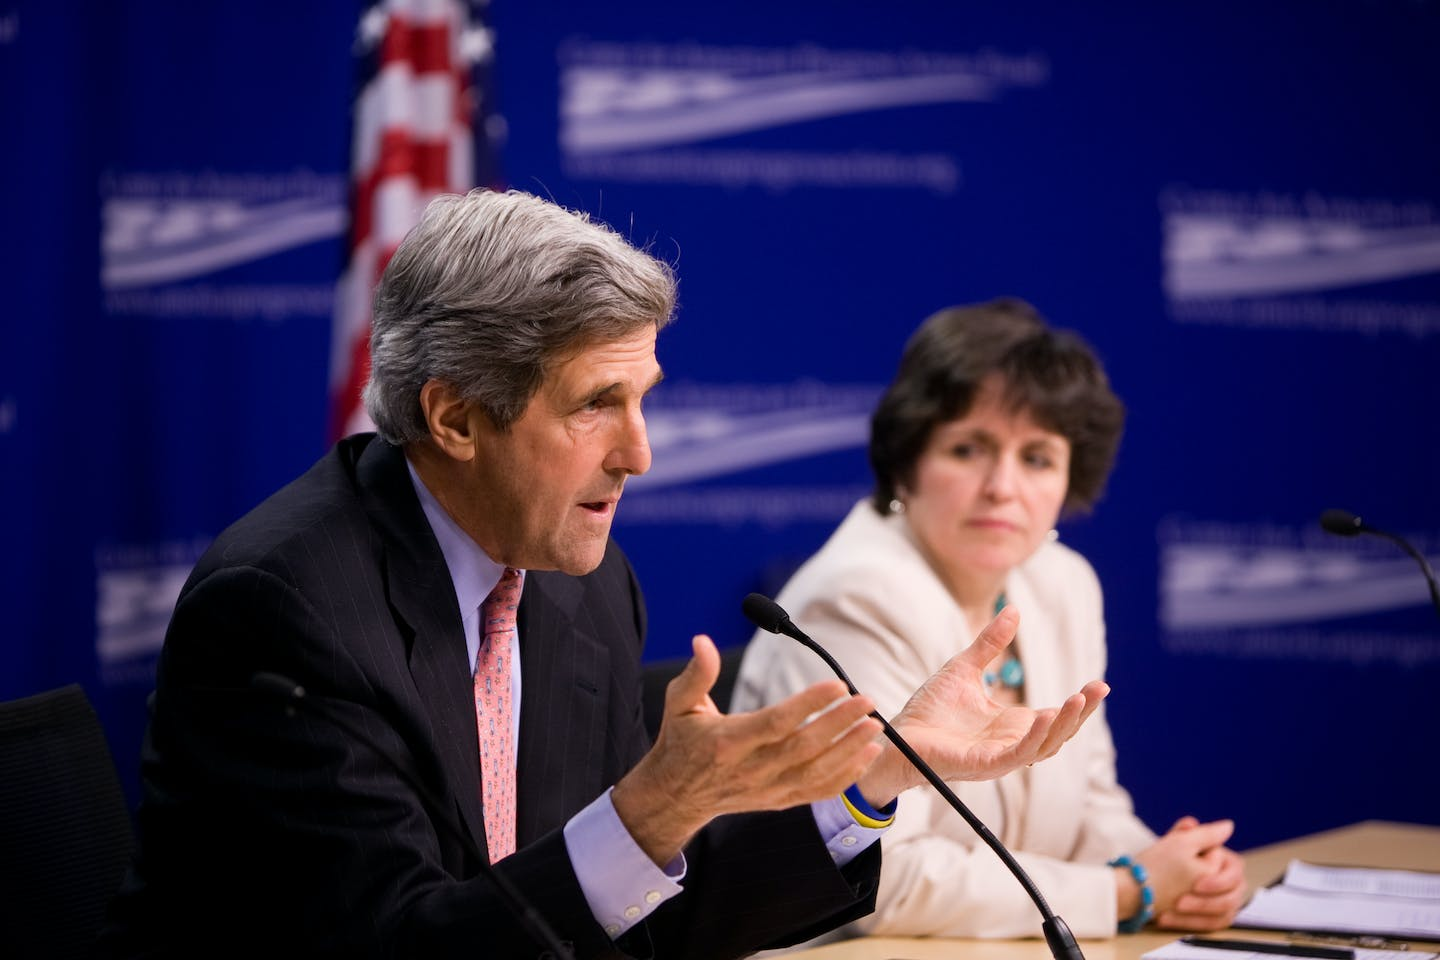 John Kerry, US climate chief